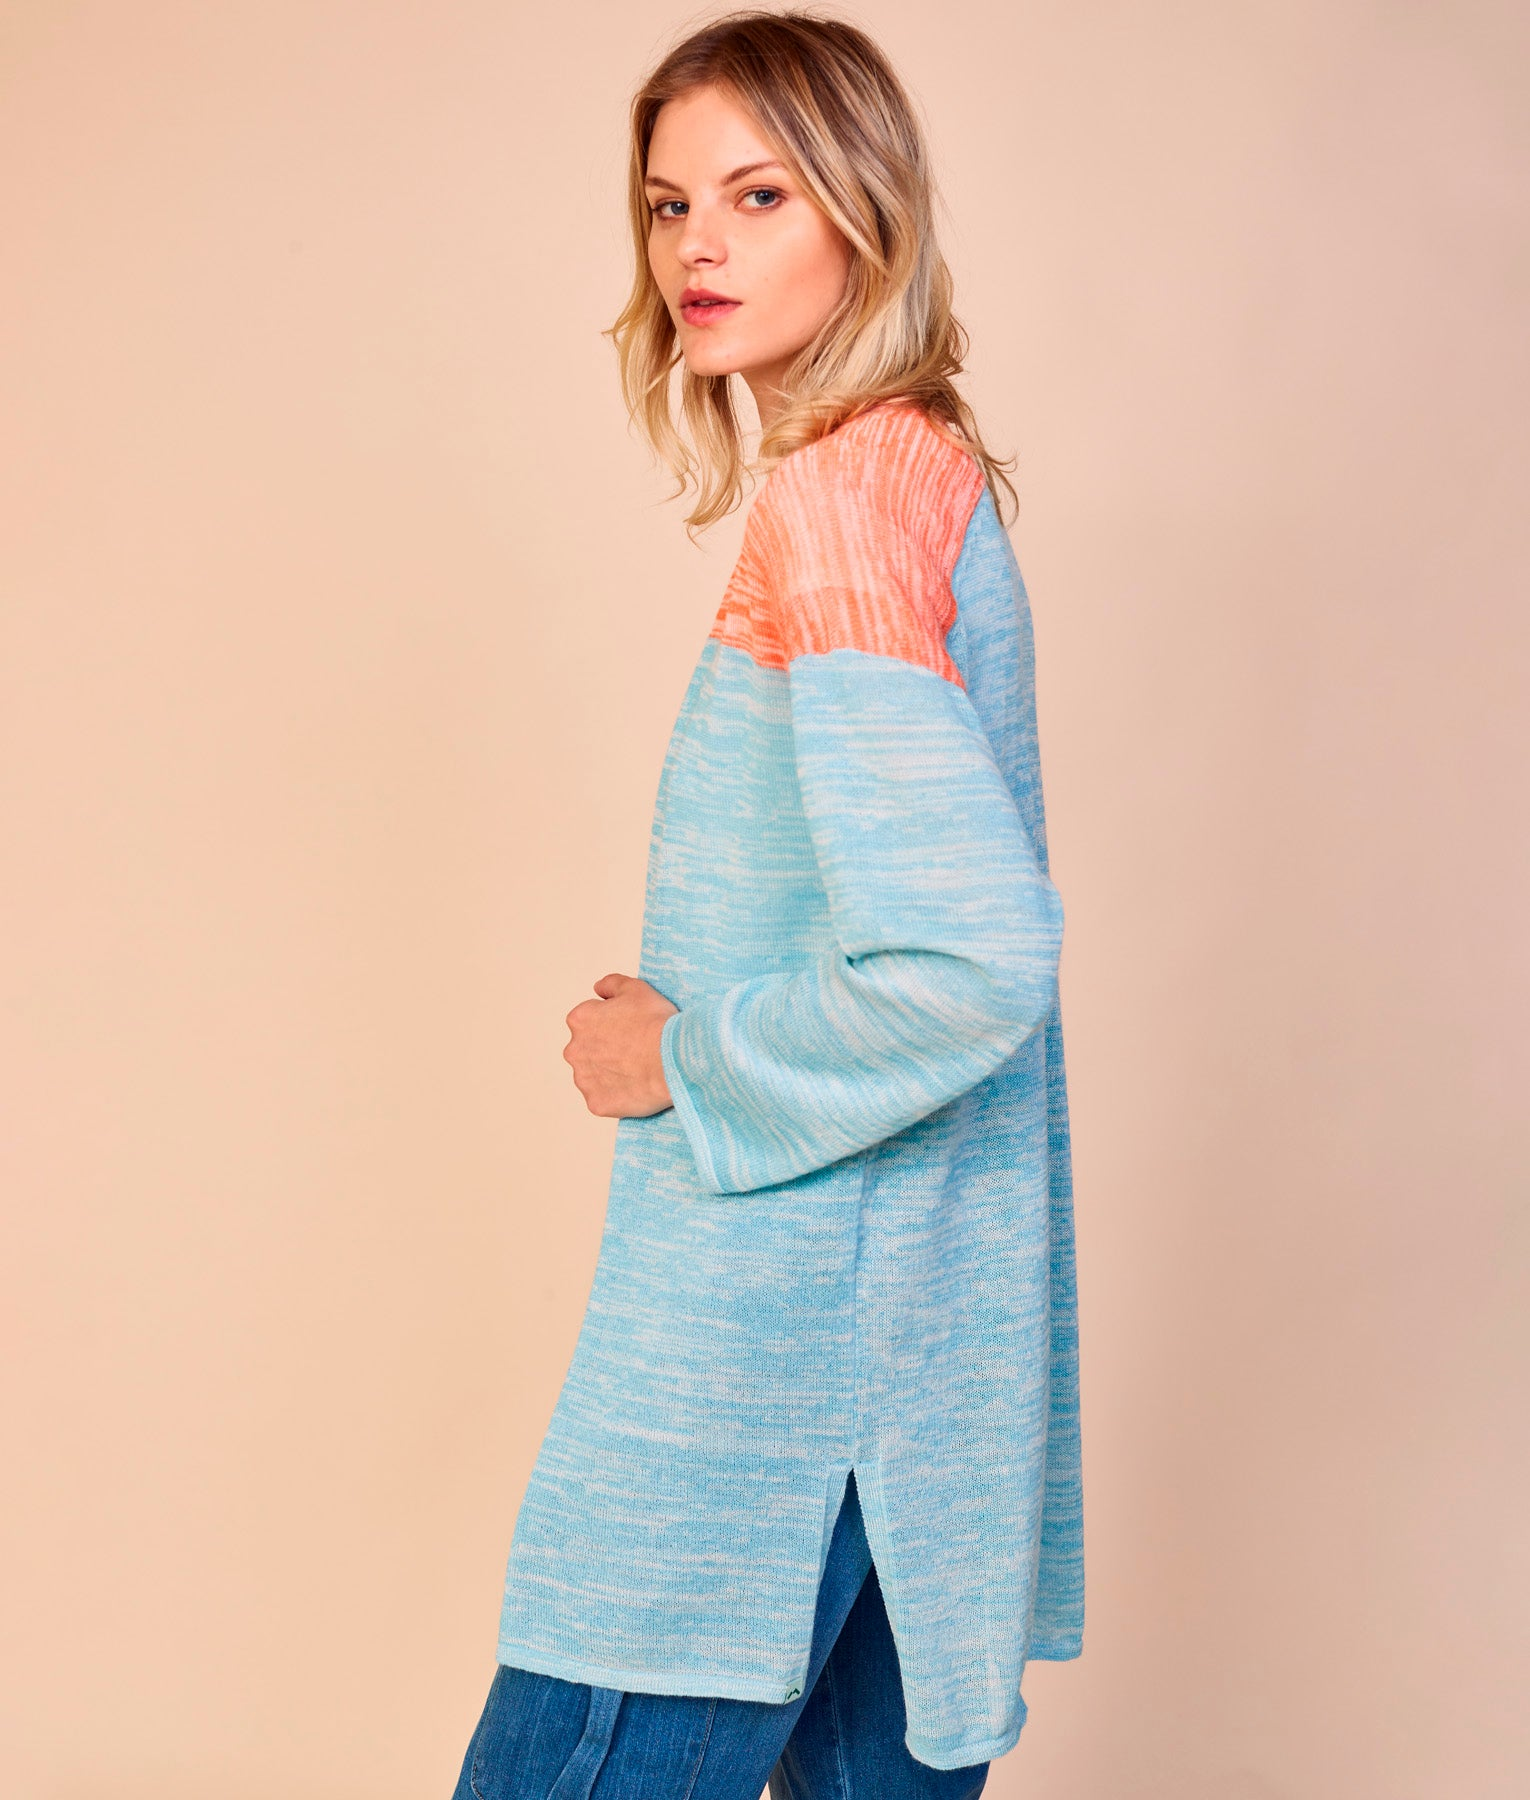 TITICACA LONG CARDIGAN